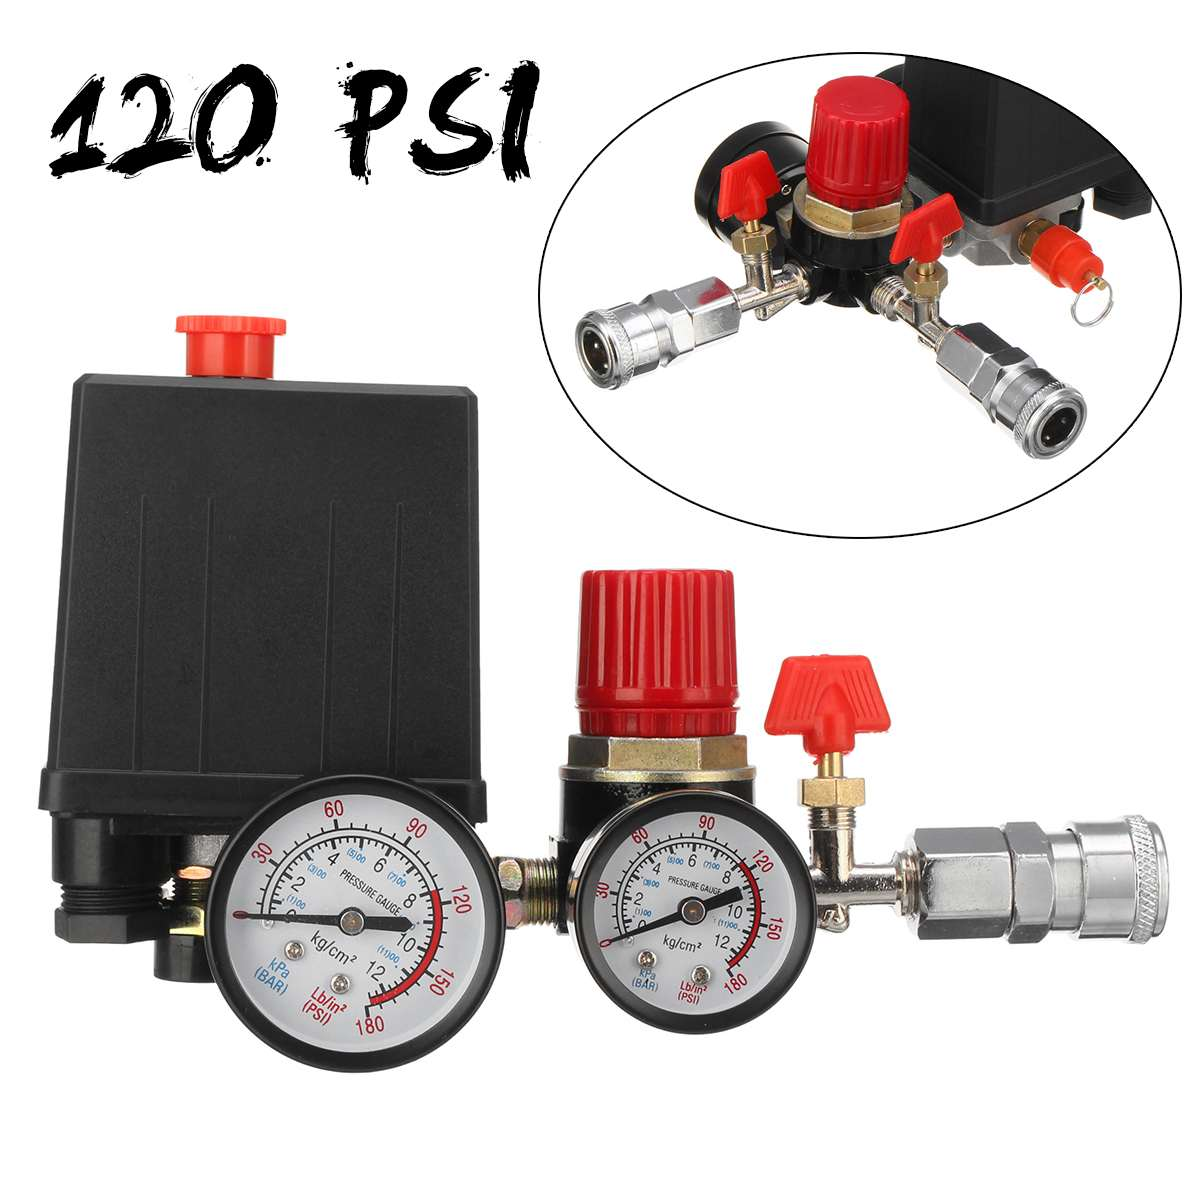 240V AC Regulator Air Compressor Pump Pressure Control Switch Valve Manifold Relief Regulator Gauge With Quick Connector